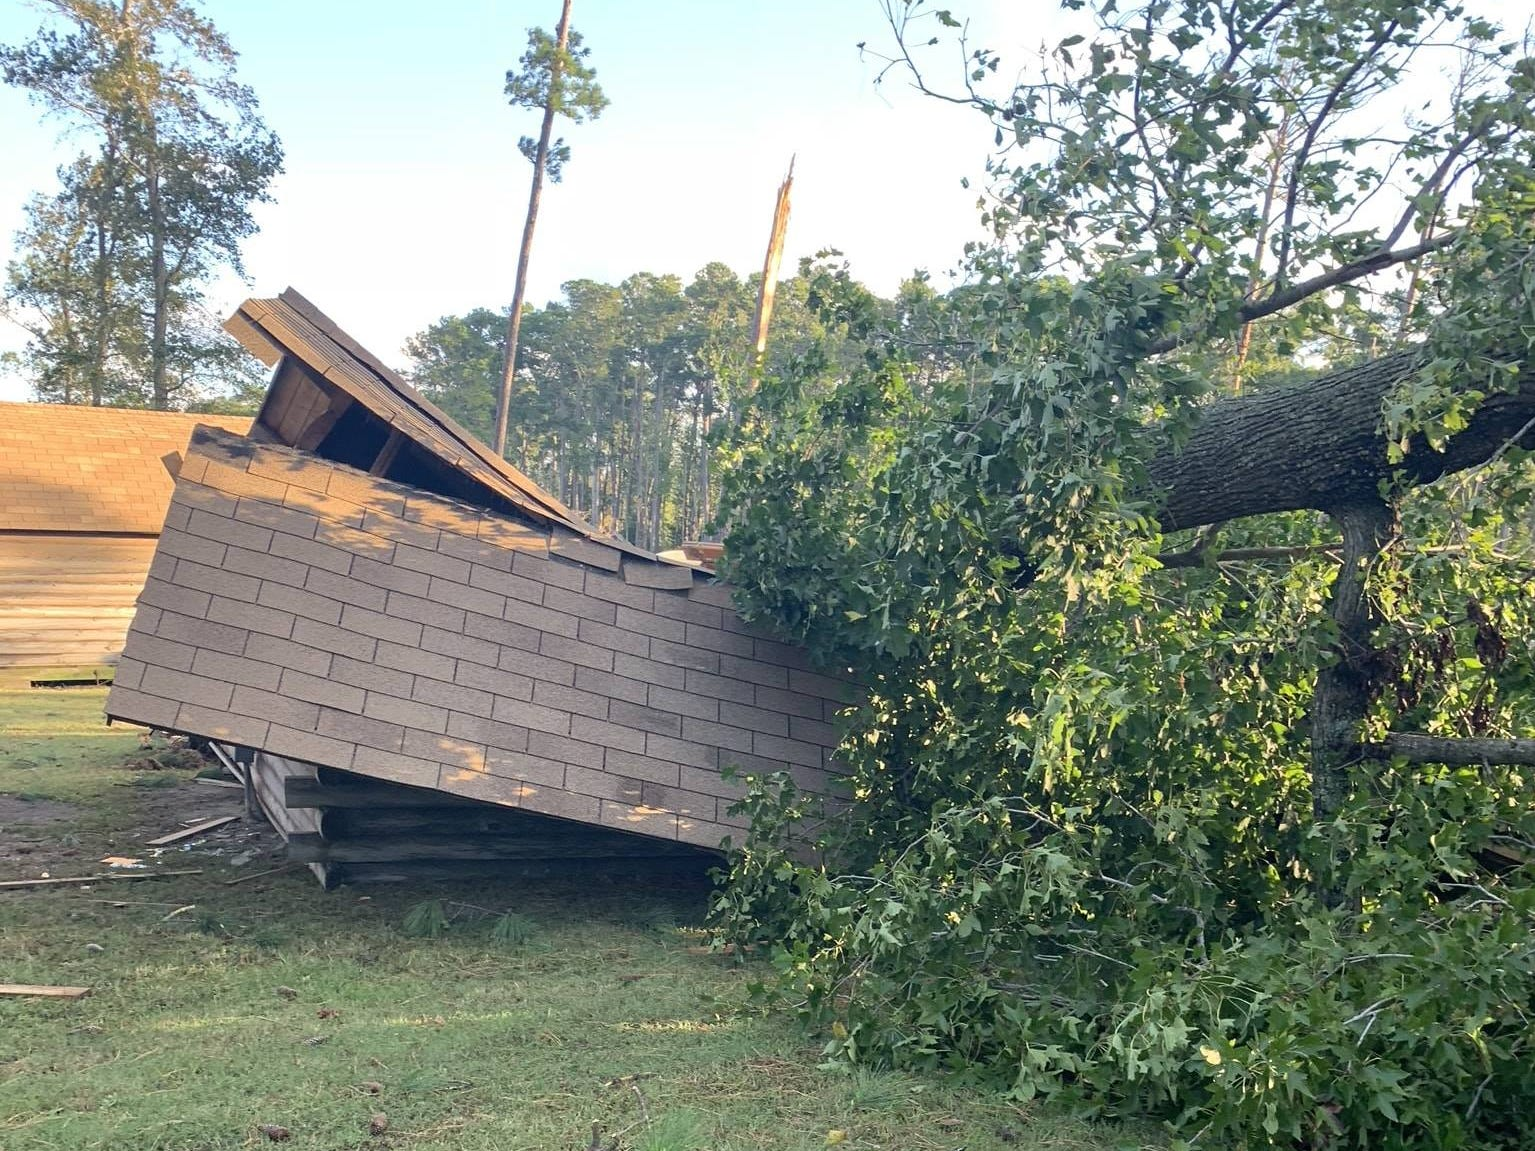 Strong winds from Tropical Storm Michael brought this tree down  on a structure at the Cherrystone Family Camping Resort in Cape Charles. The resort said in a facebook post it was under mandatory evacuation and will be closed under further notice.